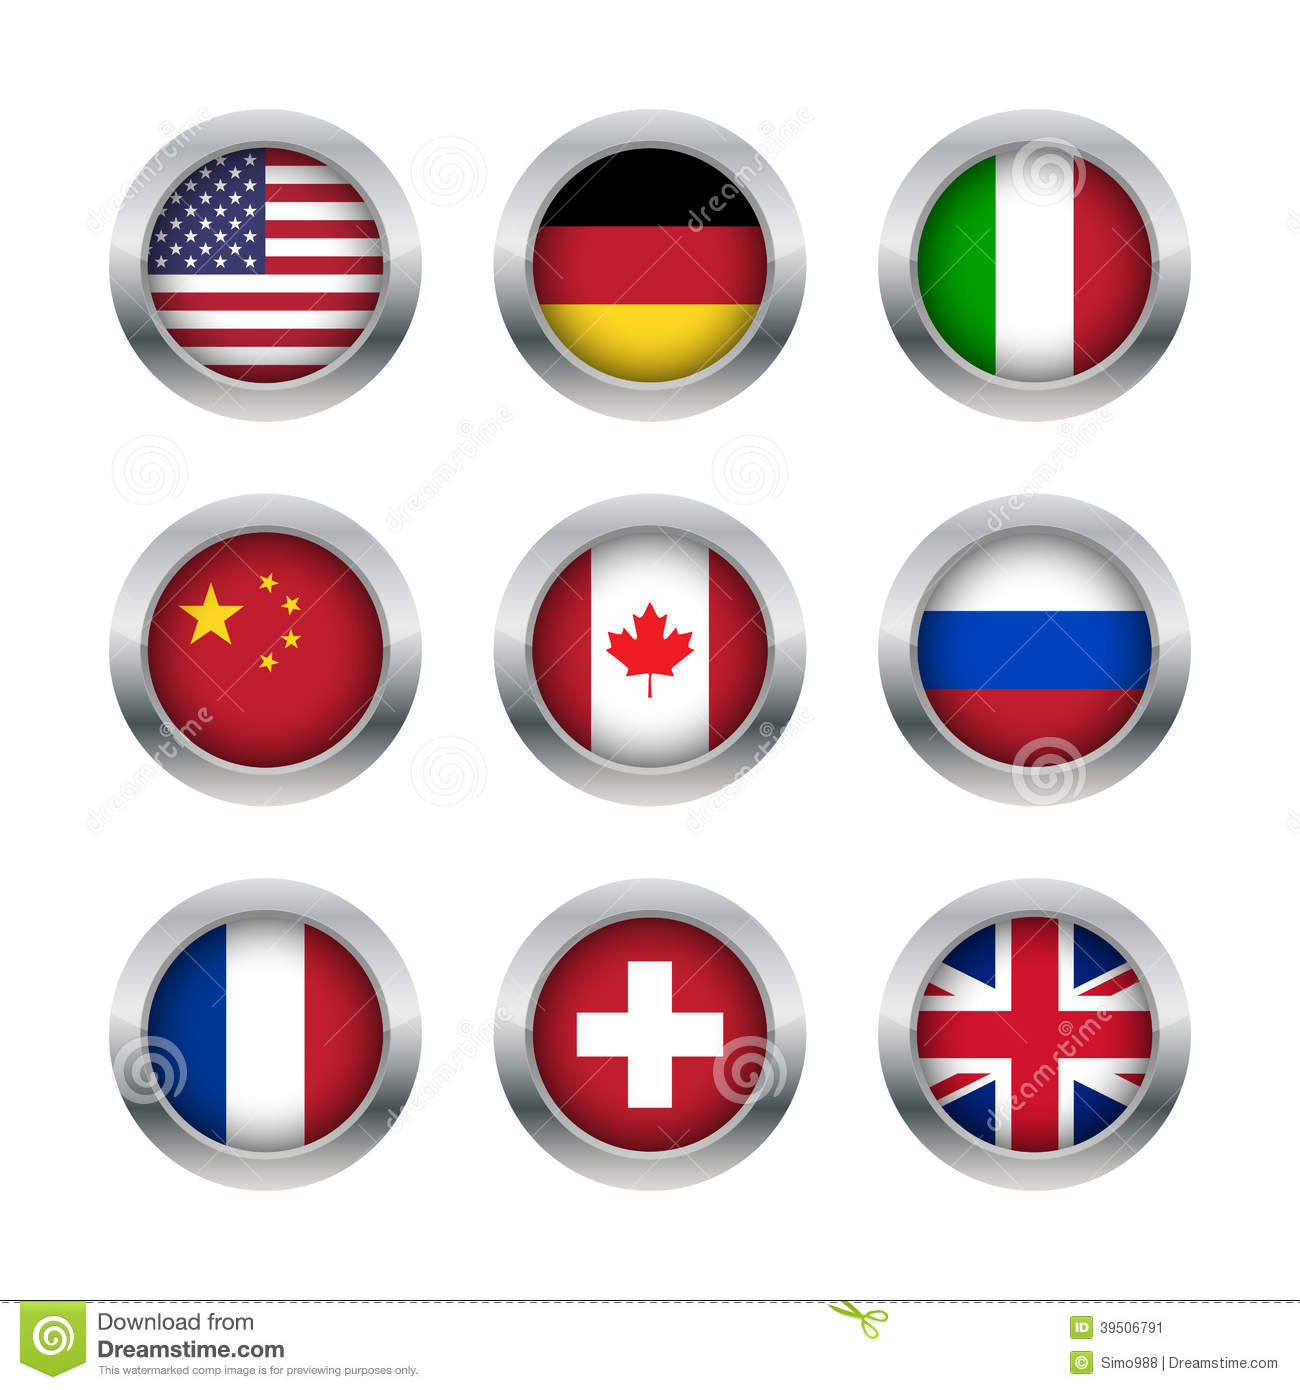 Flag buttons set 1